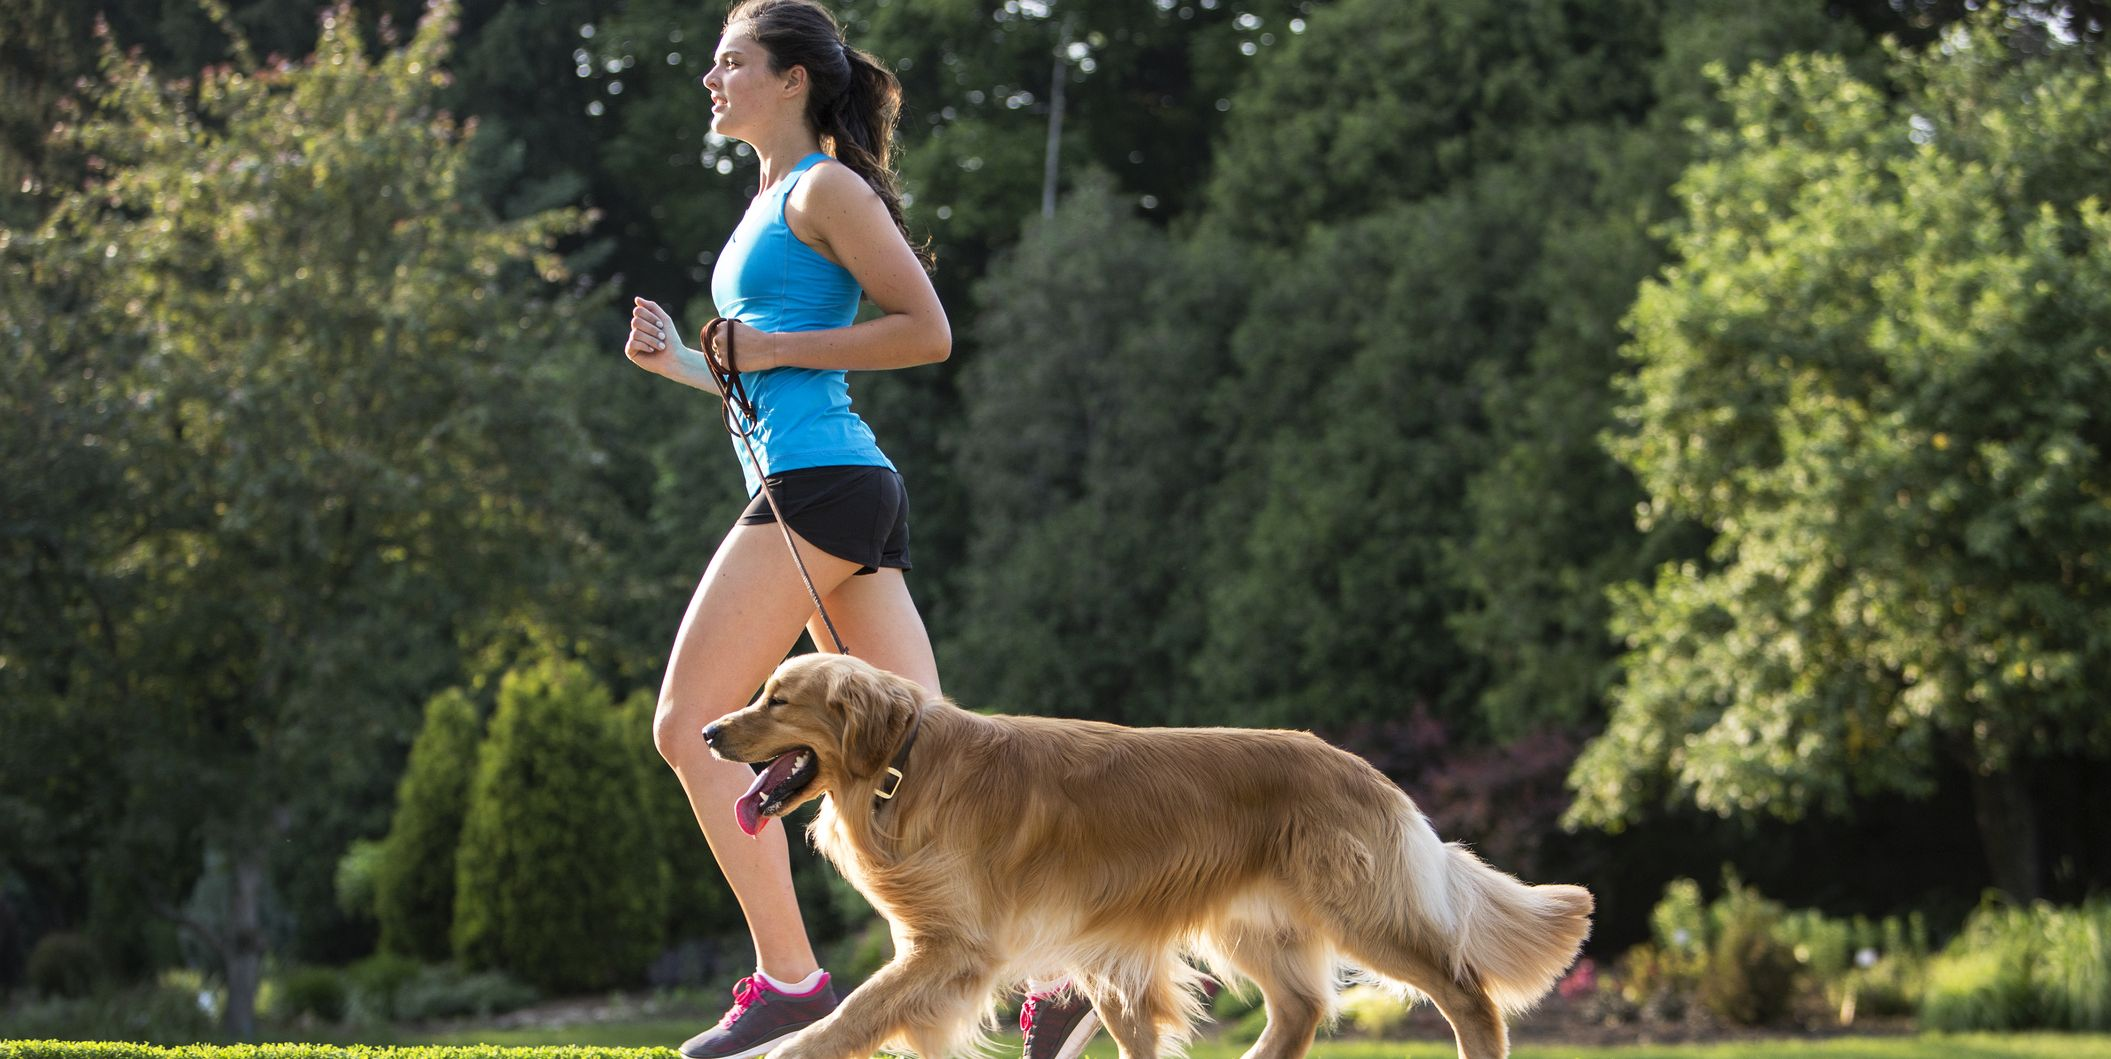 Jogger and Golden Retriever Running on a Paved Trail.